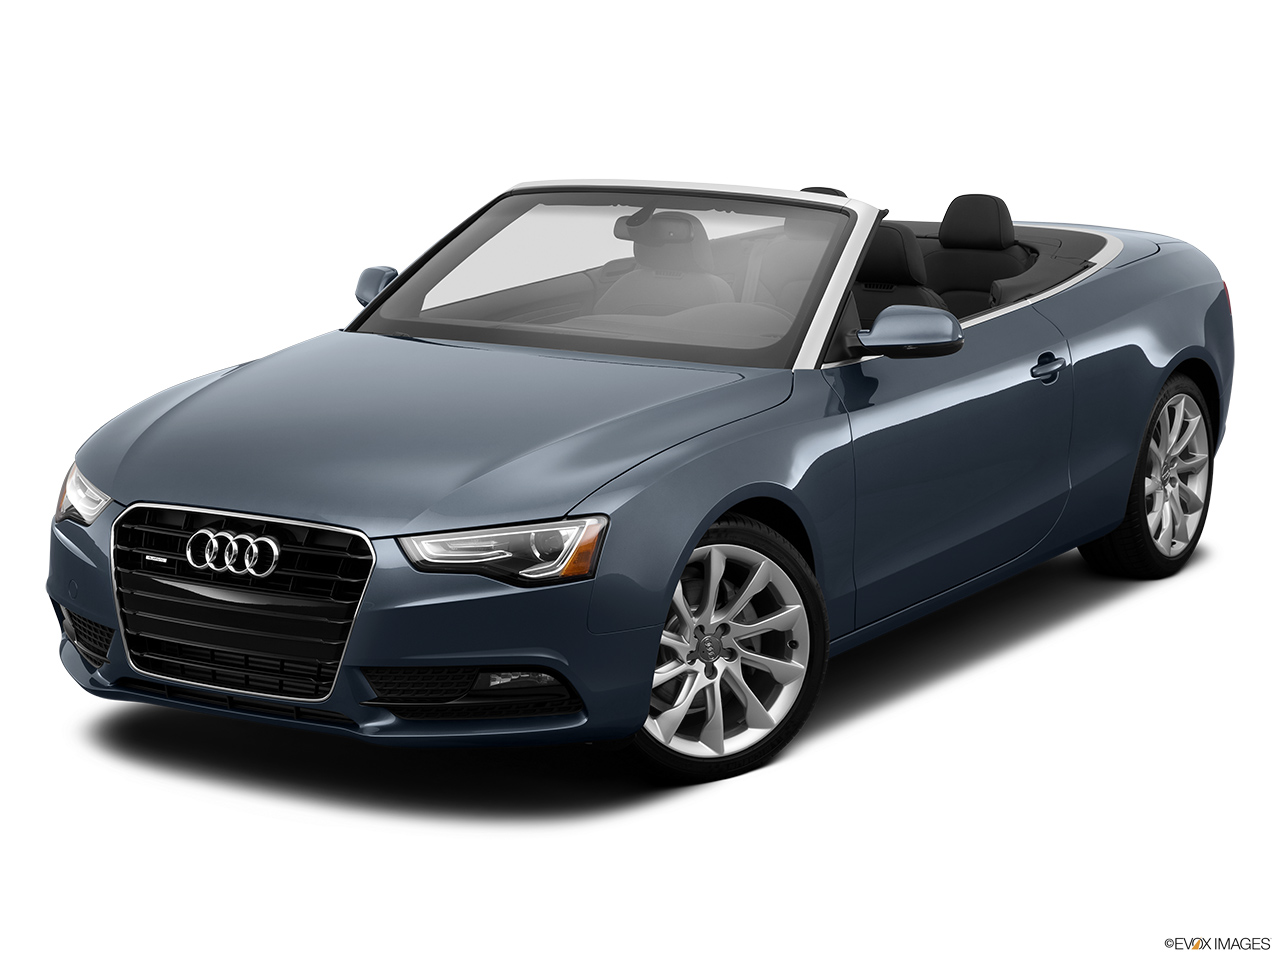 2014 audi a5 cabriolet automatic quattro 2 0t prestige. Black Bedroom Furniture Sets. Home Design Ideas